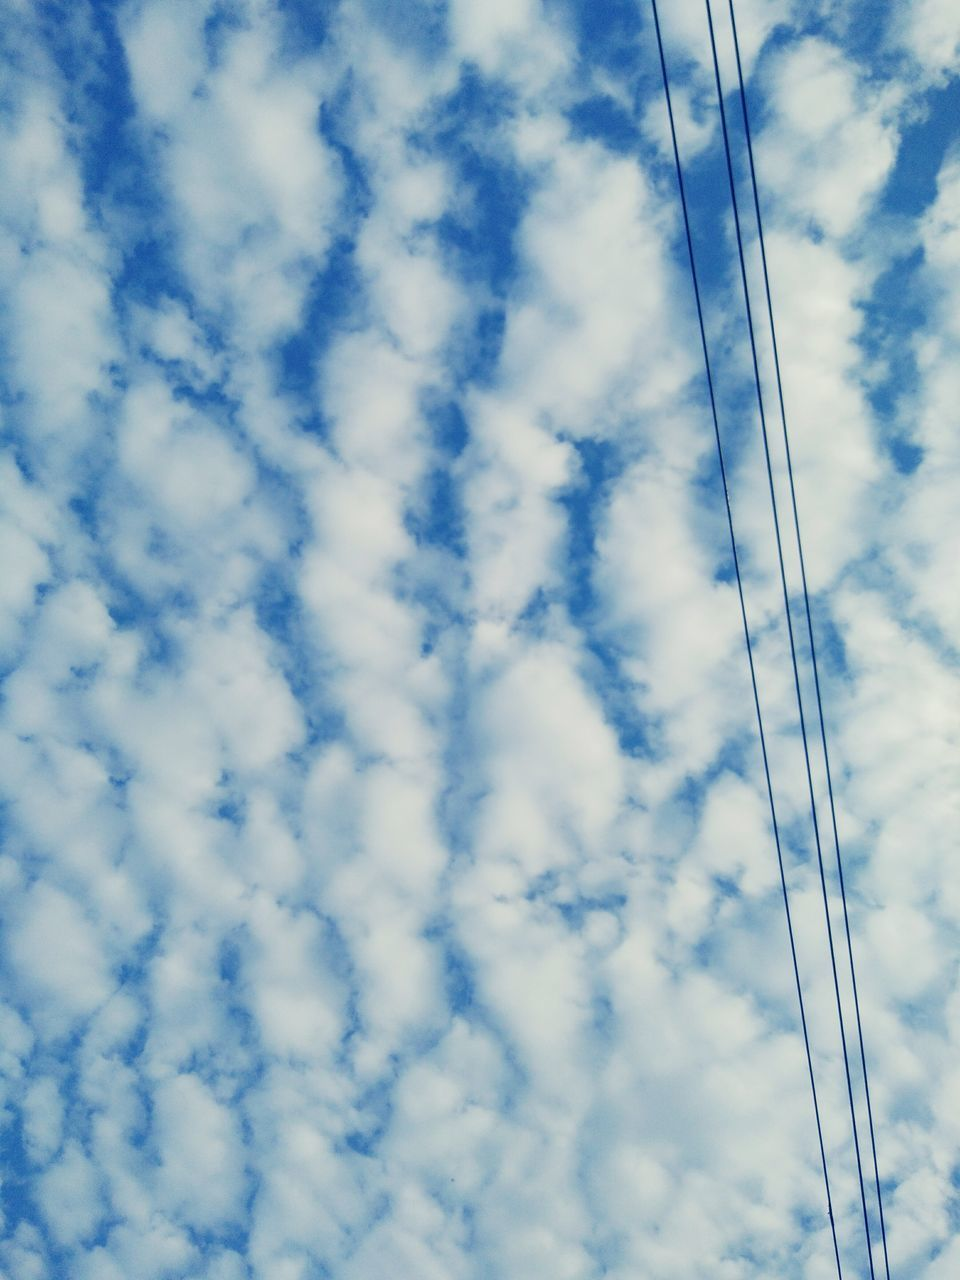 cloud - sky, low angle view, sky, cable, no people, connection, day, blue, outdoors, technology, nature, beauty in nature